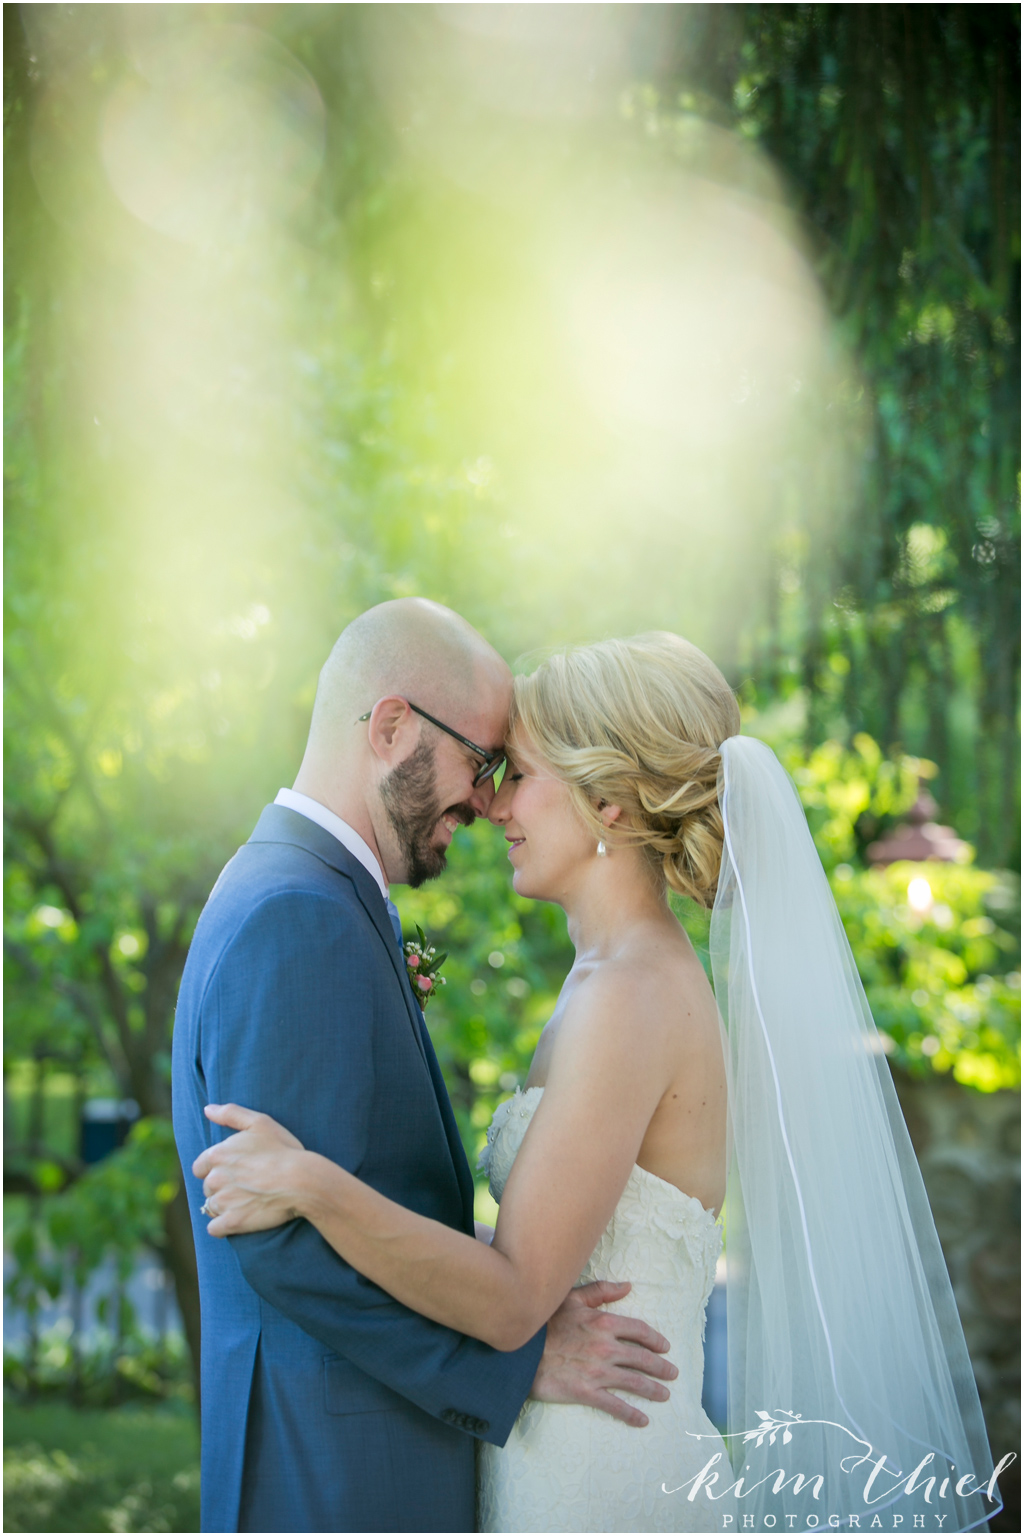 Kim-Thiel-Photography-Bright-Wedding-Portraits-01, Bright Wedding Portraits